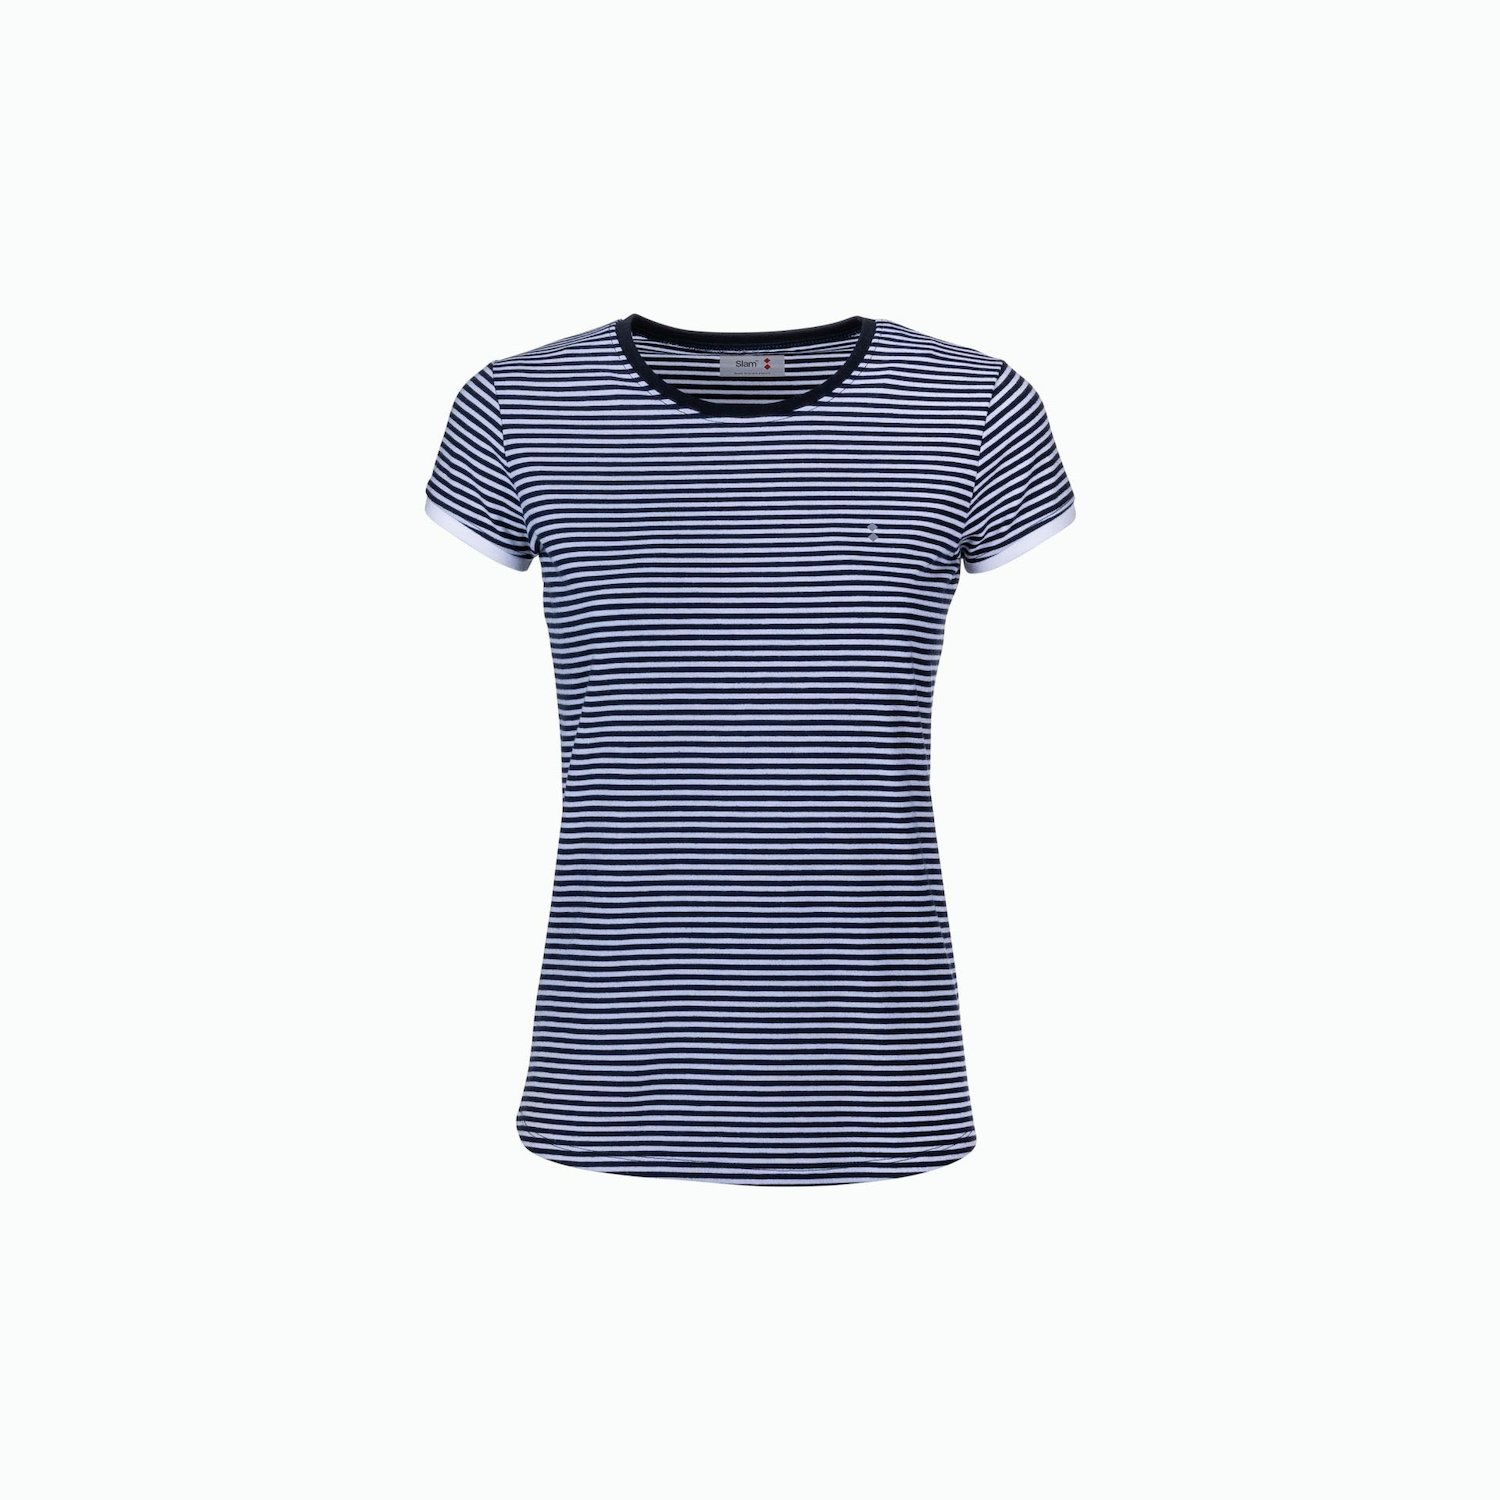 C189 T-Shirt - Navy / White